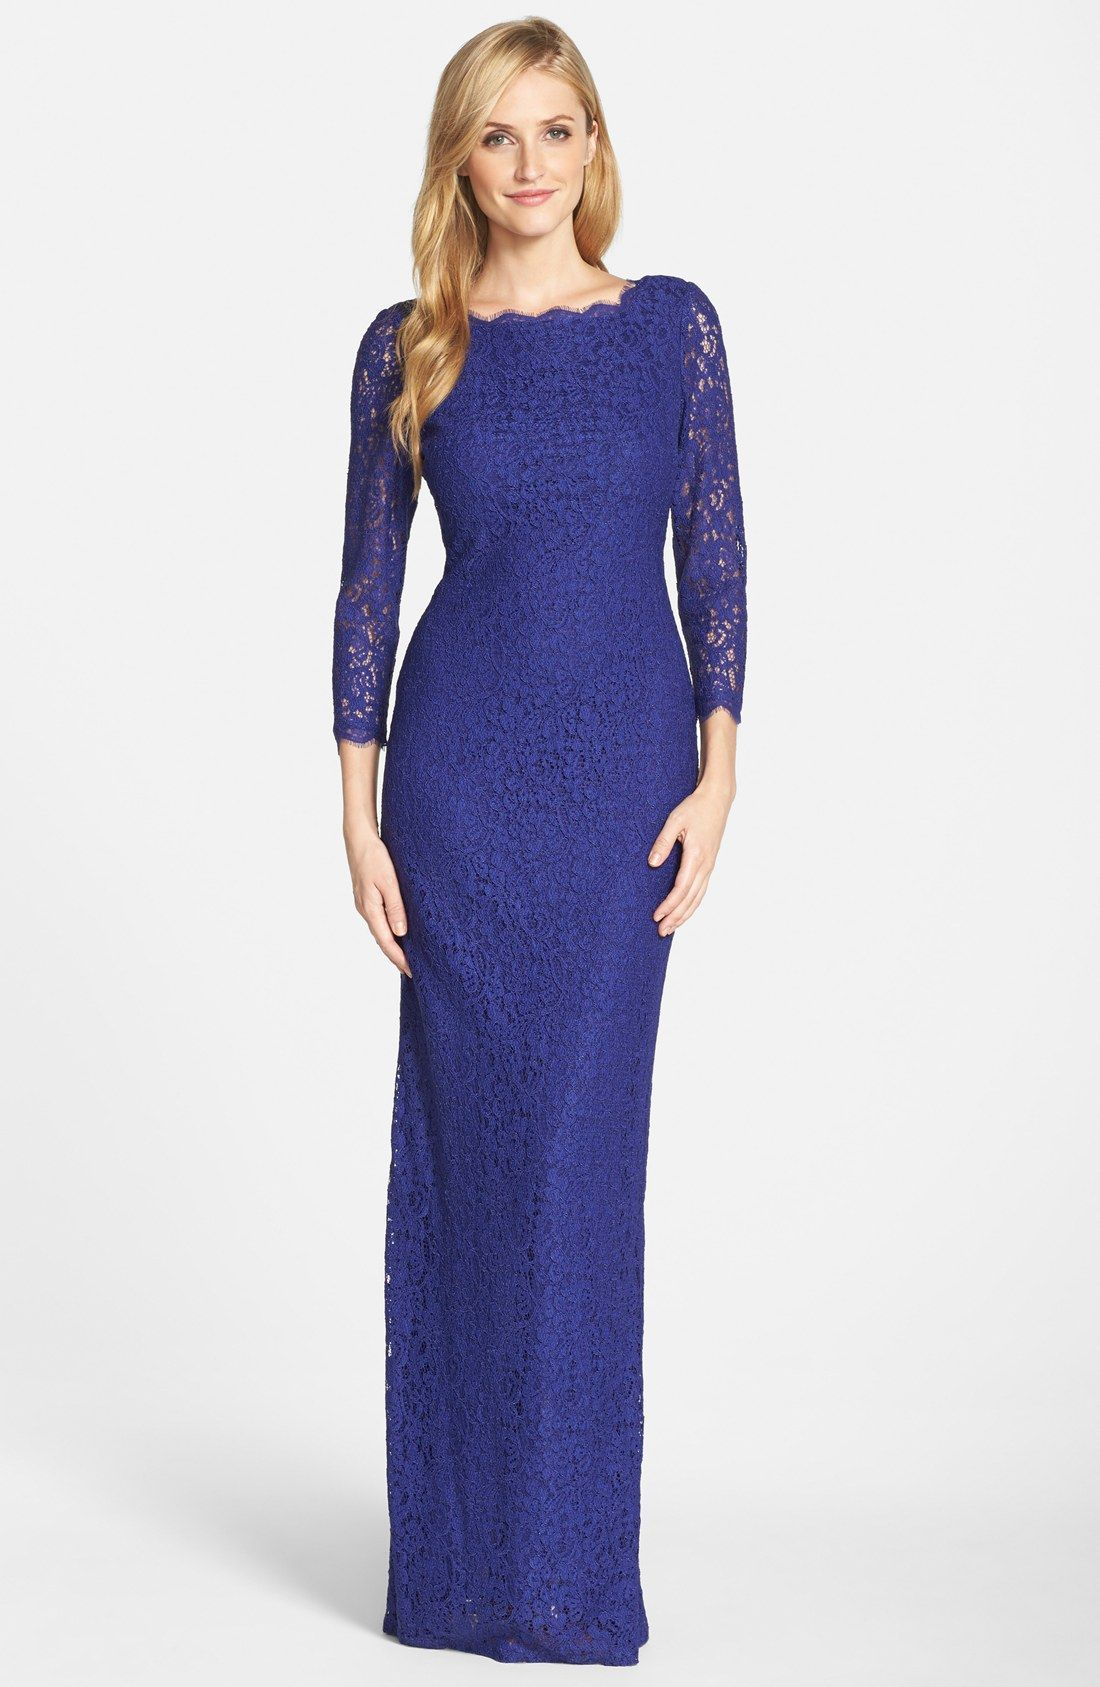 Adrianna Papell Scalloped Lace Gown (Regular & Petite) | Dresses ...